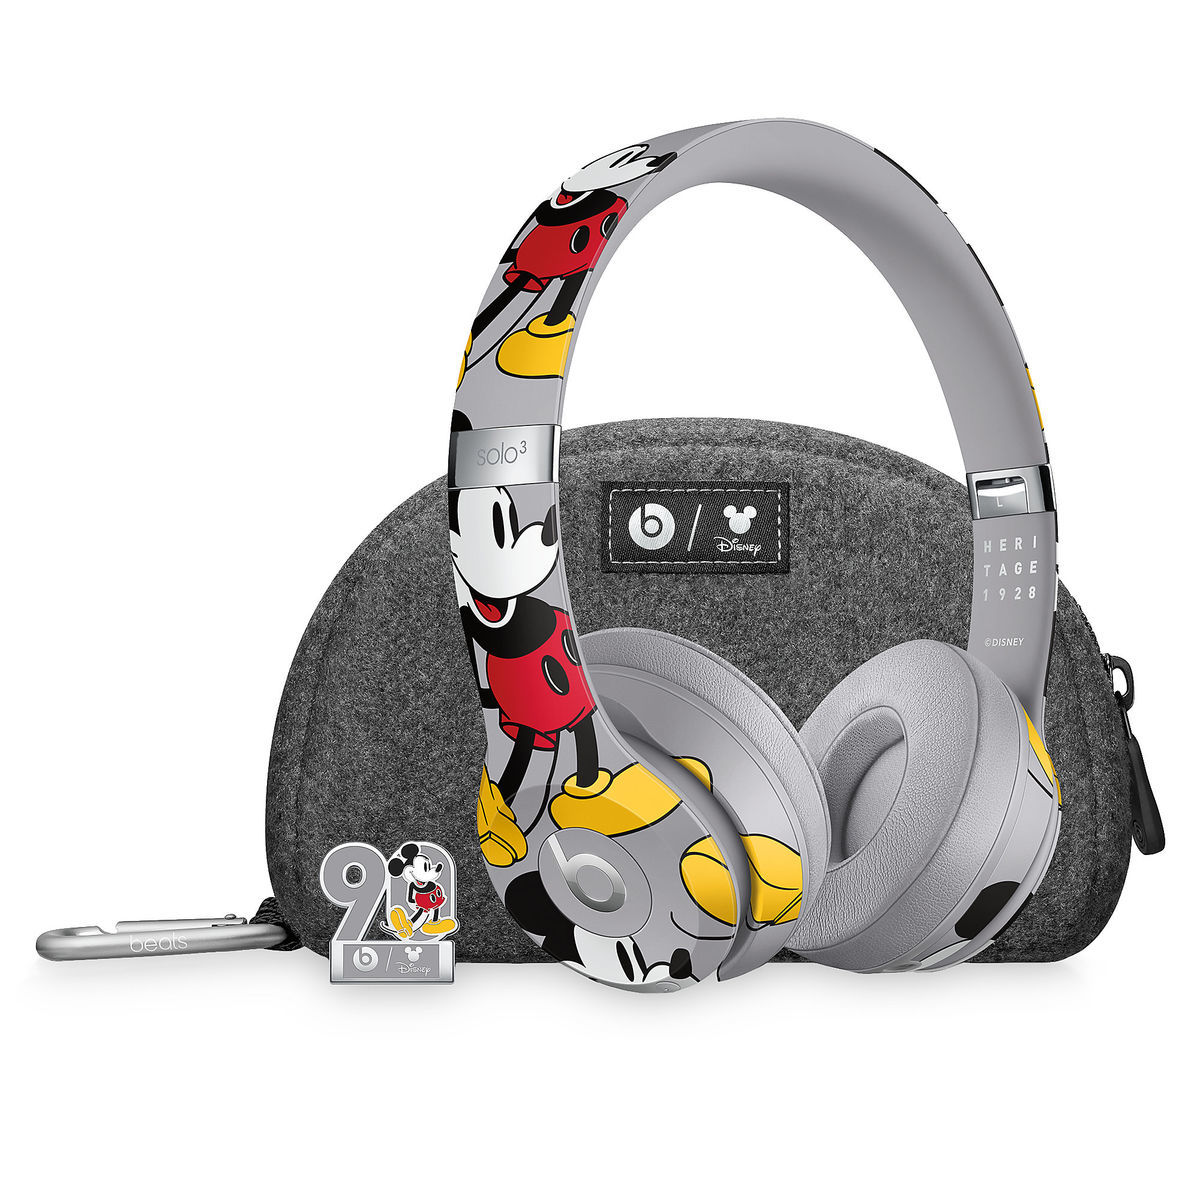 Product Image of Beats Solo3 Wireless Headphones - Mickey s 90th  Anniversary Edition - Gray   1 c8cc0c1855